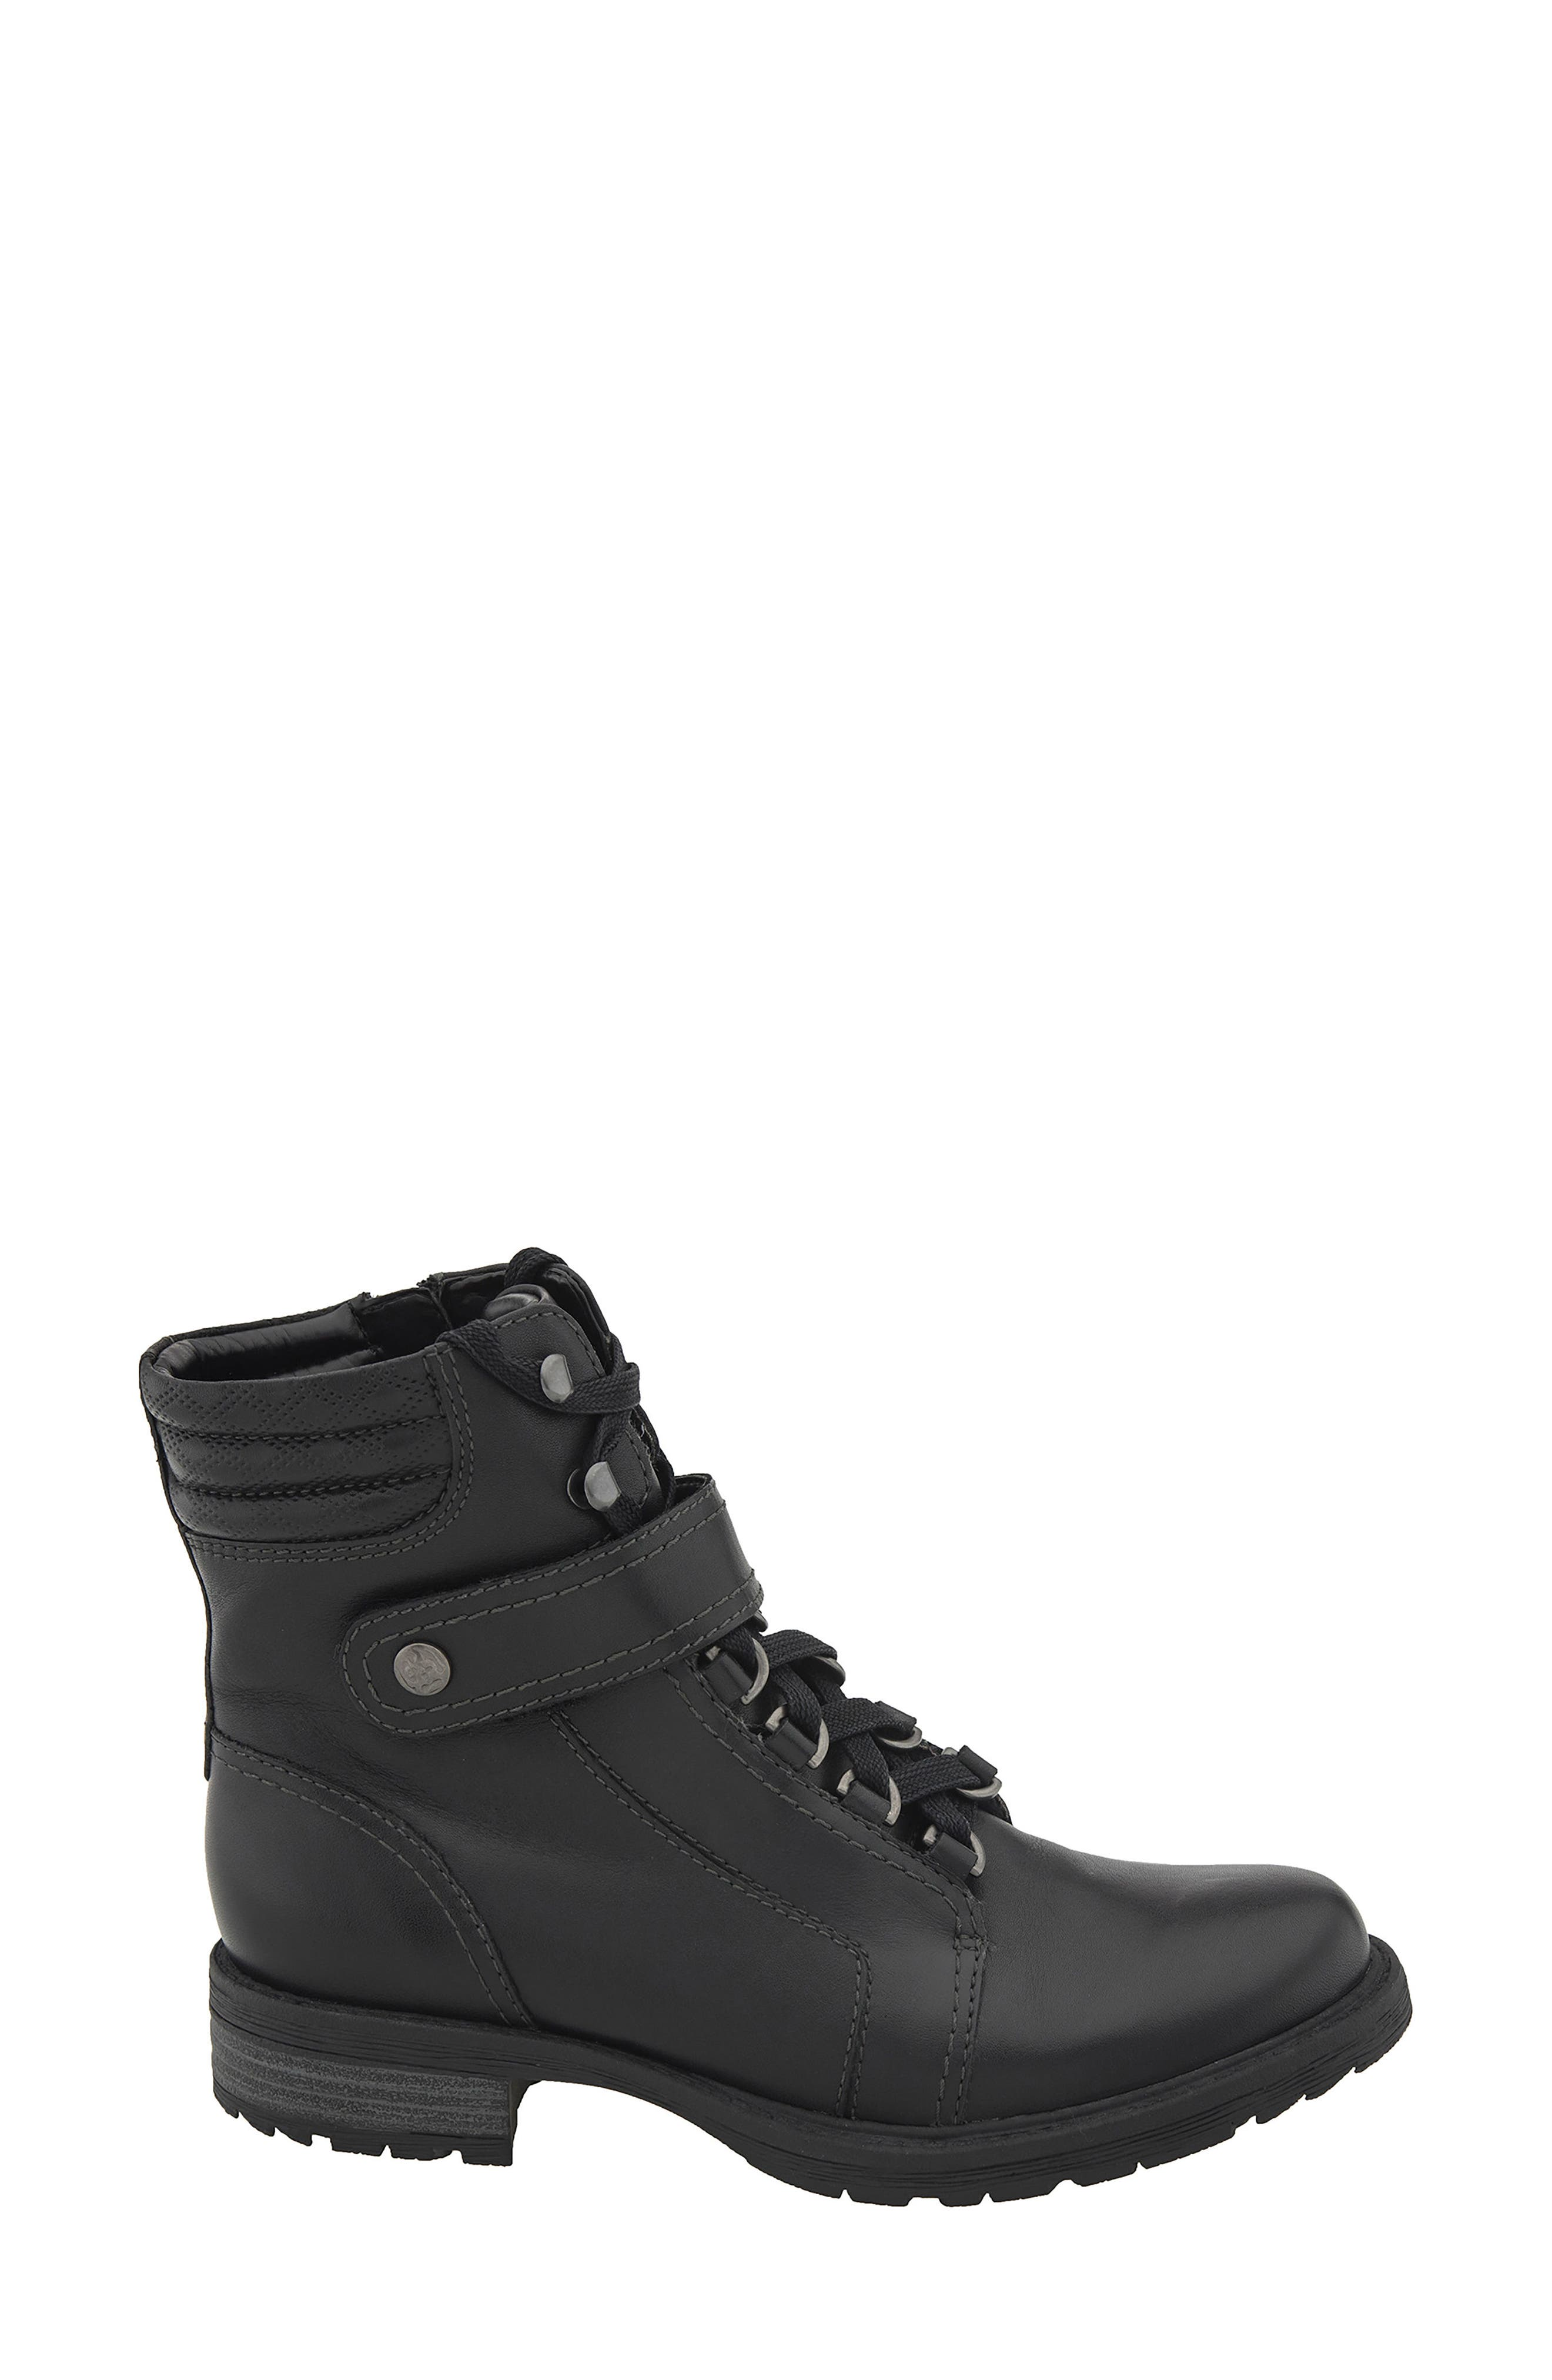 Everest Lace-Up Boot,                             Alternate thumbnail 3, color,                             Black Leather